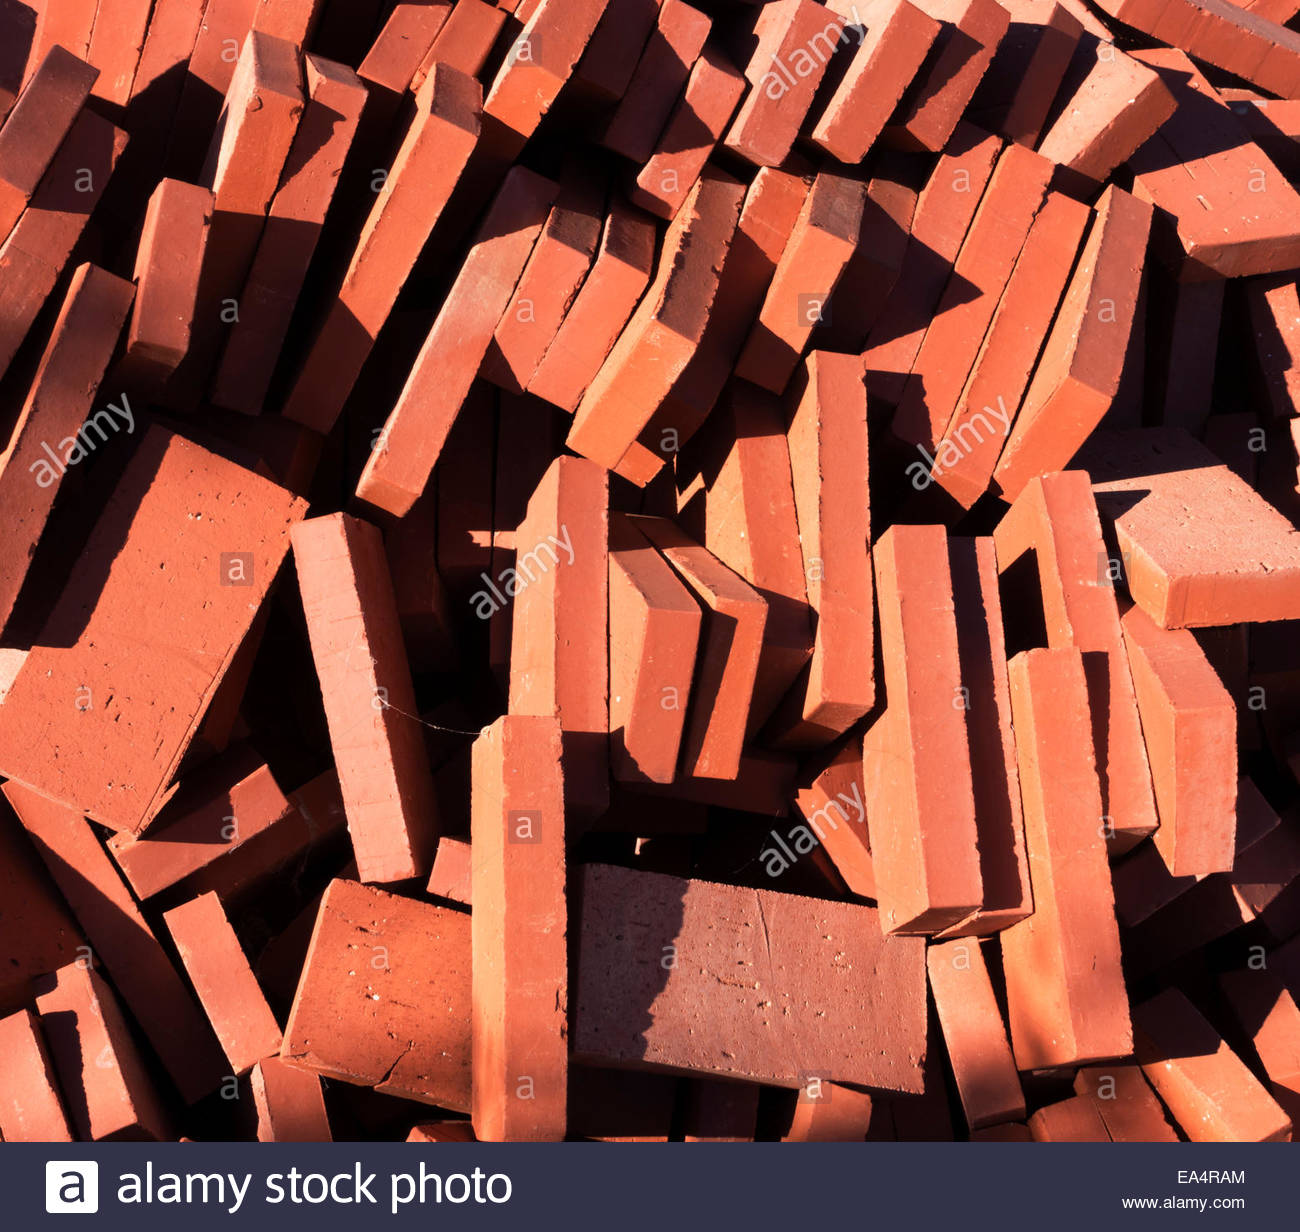 Pile of stacked red bricks - Stock Image